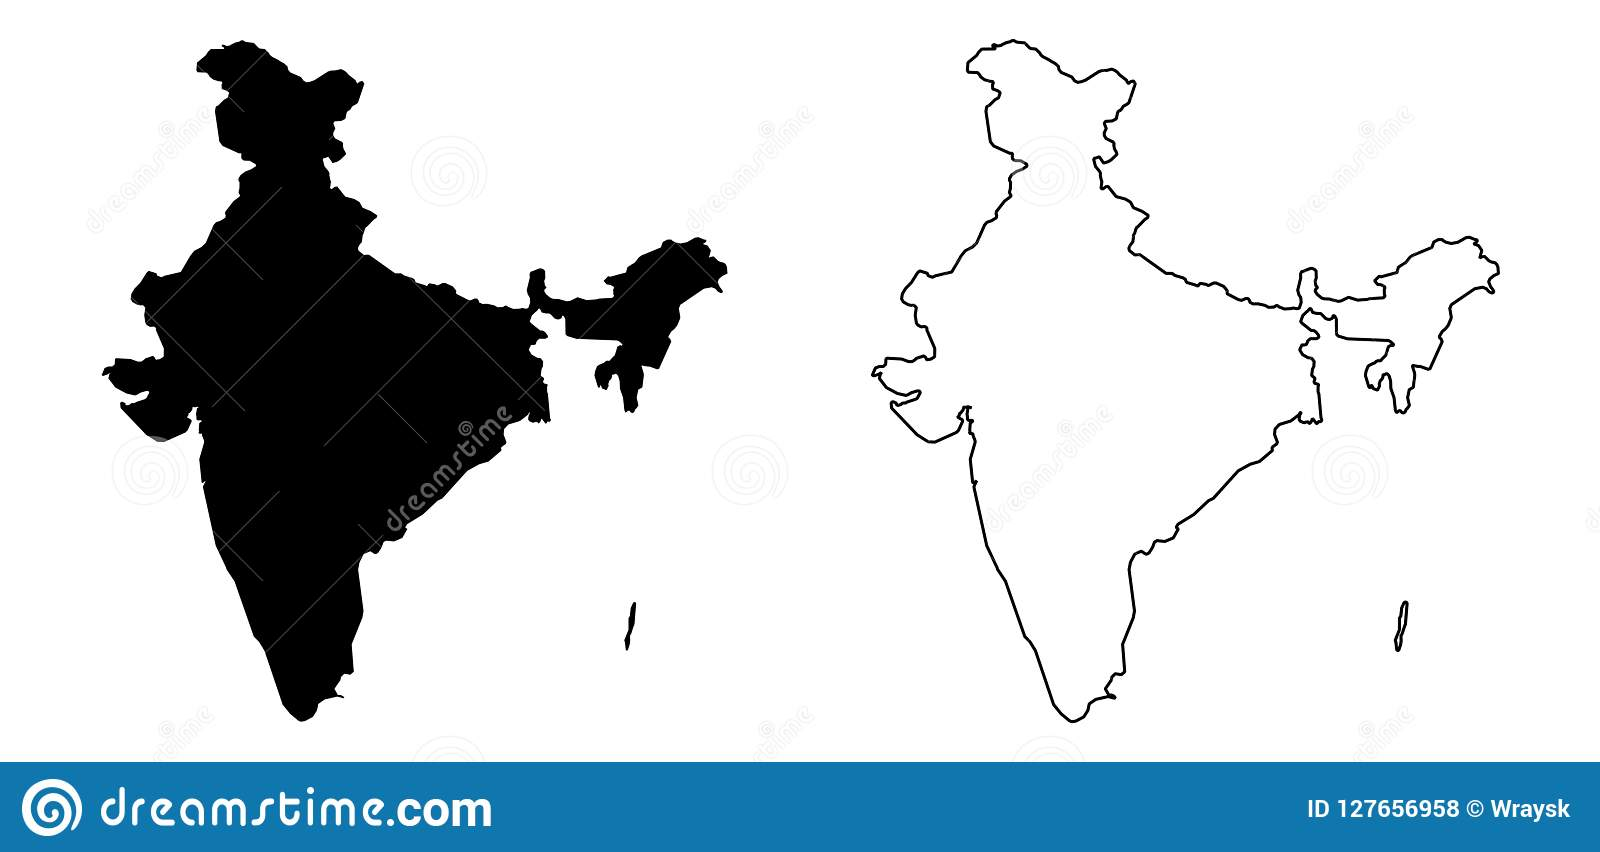 Simple Only Sharp Corners Map Of India Including Andaman And ... on america map drawing, haiti map drawing, qatar map drawing, japan map drawing, trinidad map drawing, netherlands map drawing, nigeria map drawing, jamaica map drawing, norway map drawing, south carolina map drawing, ecuador map drawing, roman empire map drawing, finland map drawing, germany map drawing, panama map drawing, galapagos islands map drawing, israel map drawing, thailand map drawing, fertile crescent map drawing, pacific ocean map drawing,